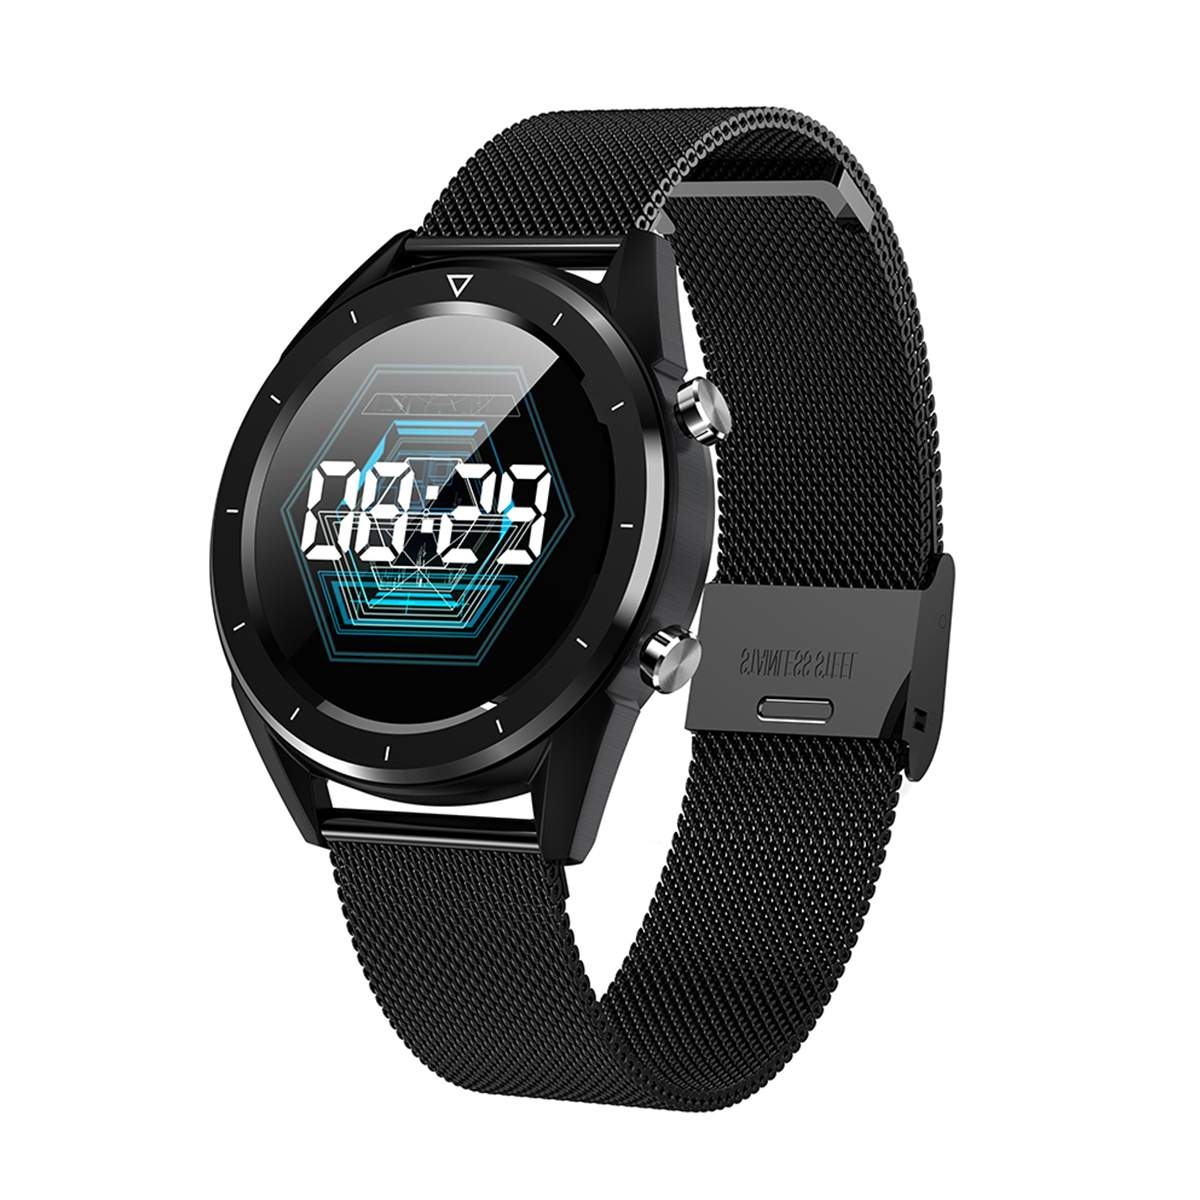 DTNO.I <font><b>DT</b></font> <font><b>NO</b></font>.<font><b>1</b></font> DT28 ECG Heart Rate Monitor Smart Watch IP68 Waterproof Fitness Tracker Blood Pressure Sports <font><b>Smartwatch</b></font> VS N58 image